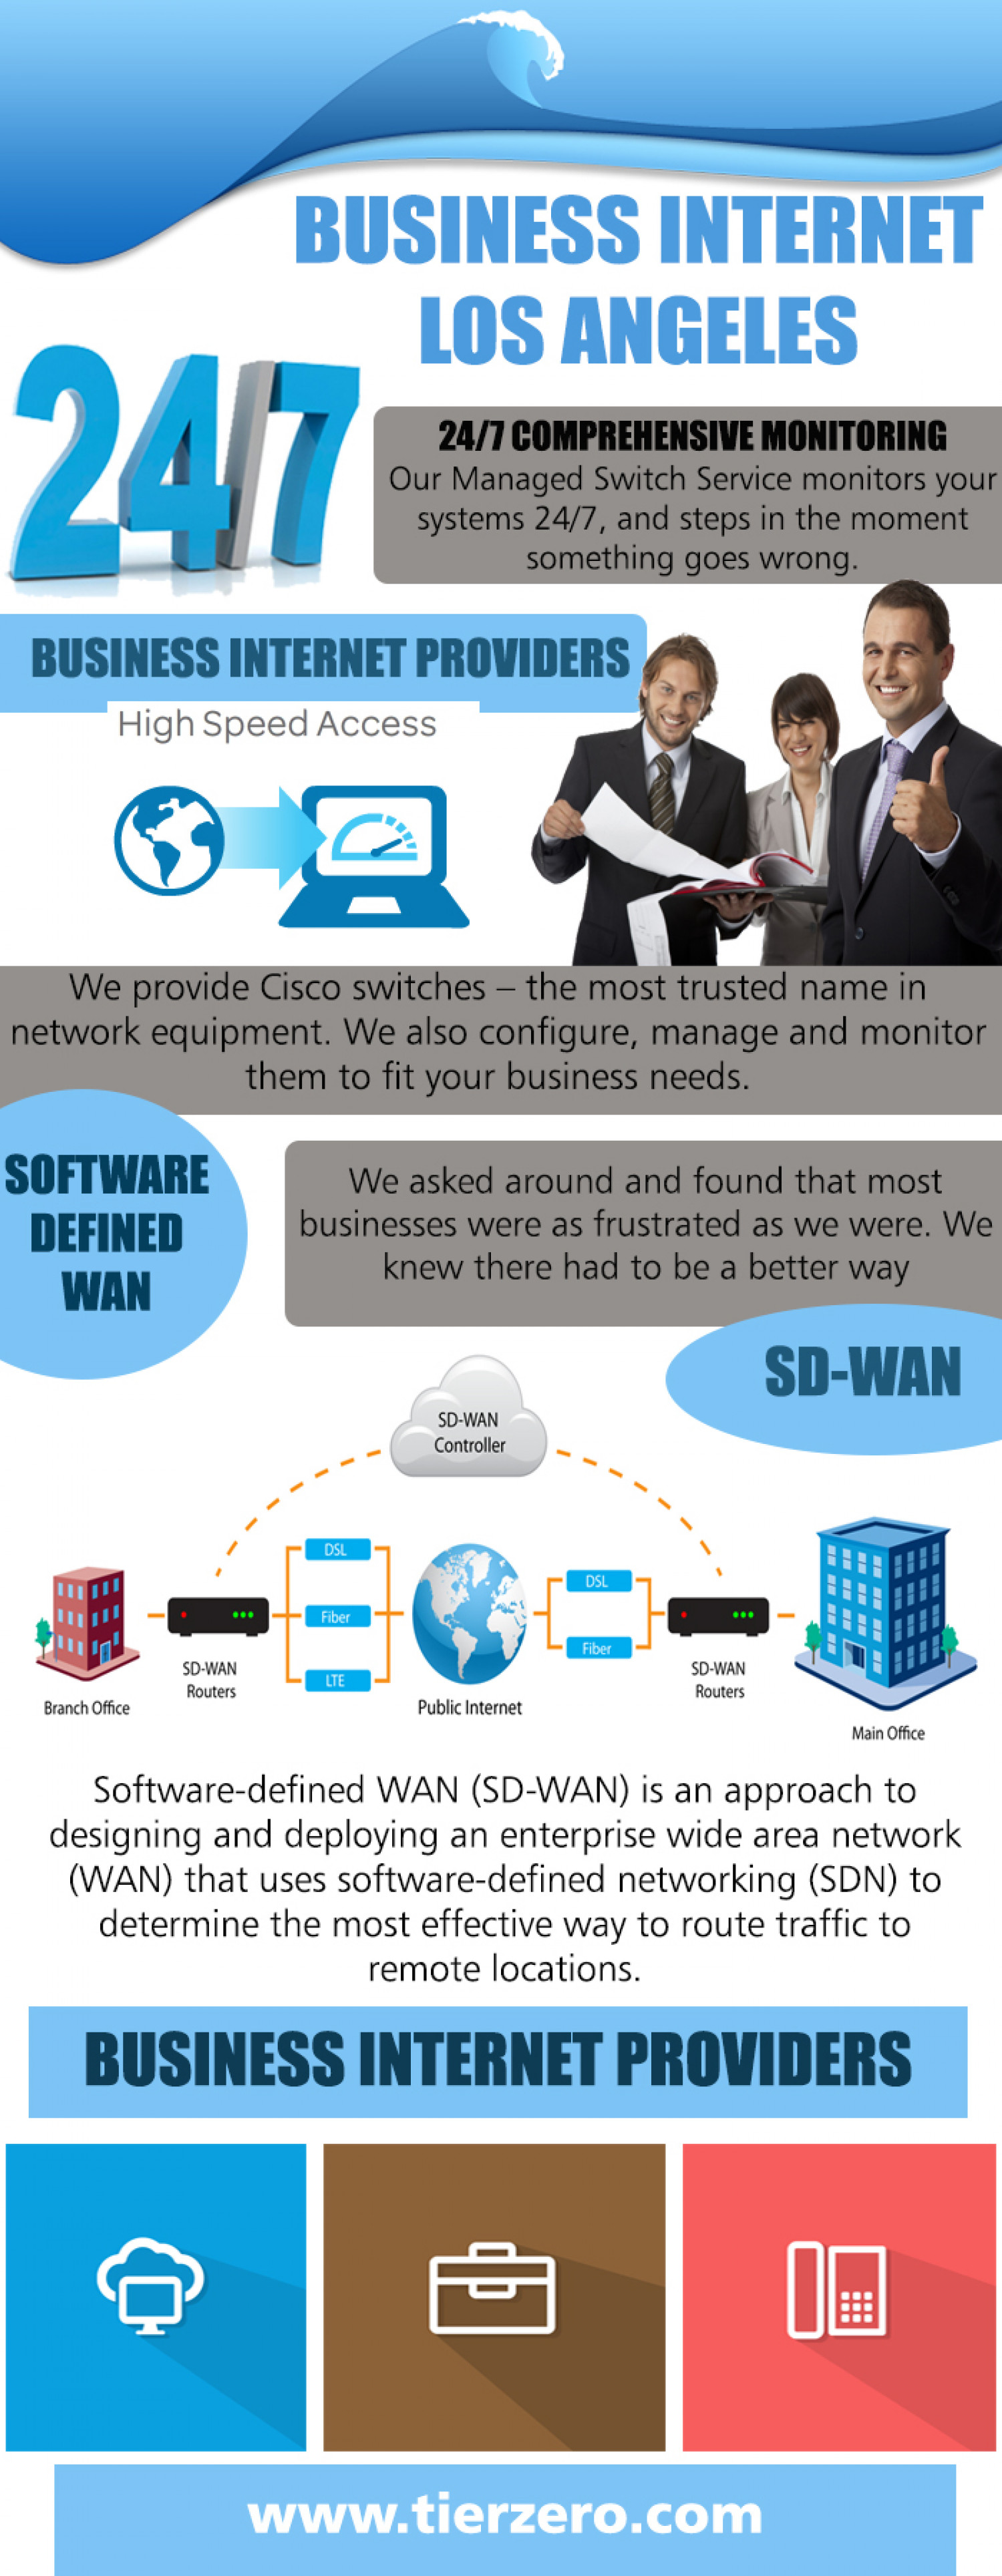 Business Internet Los Angeles Infographic